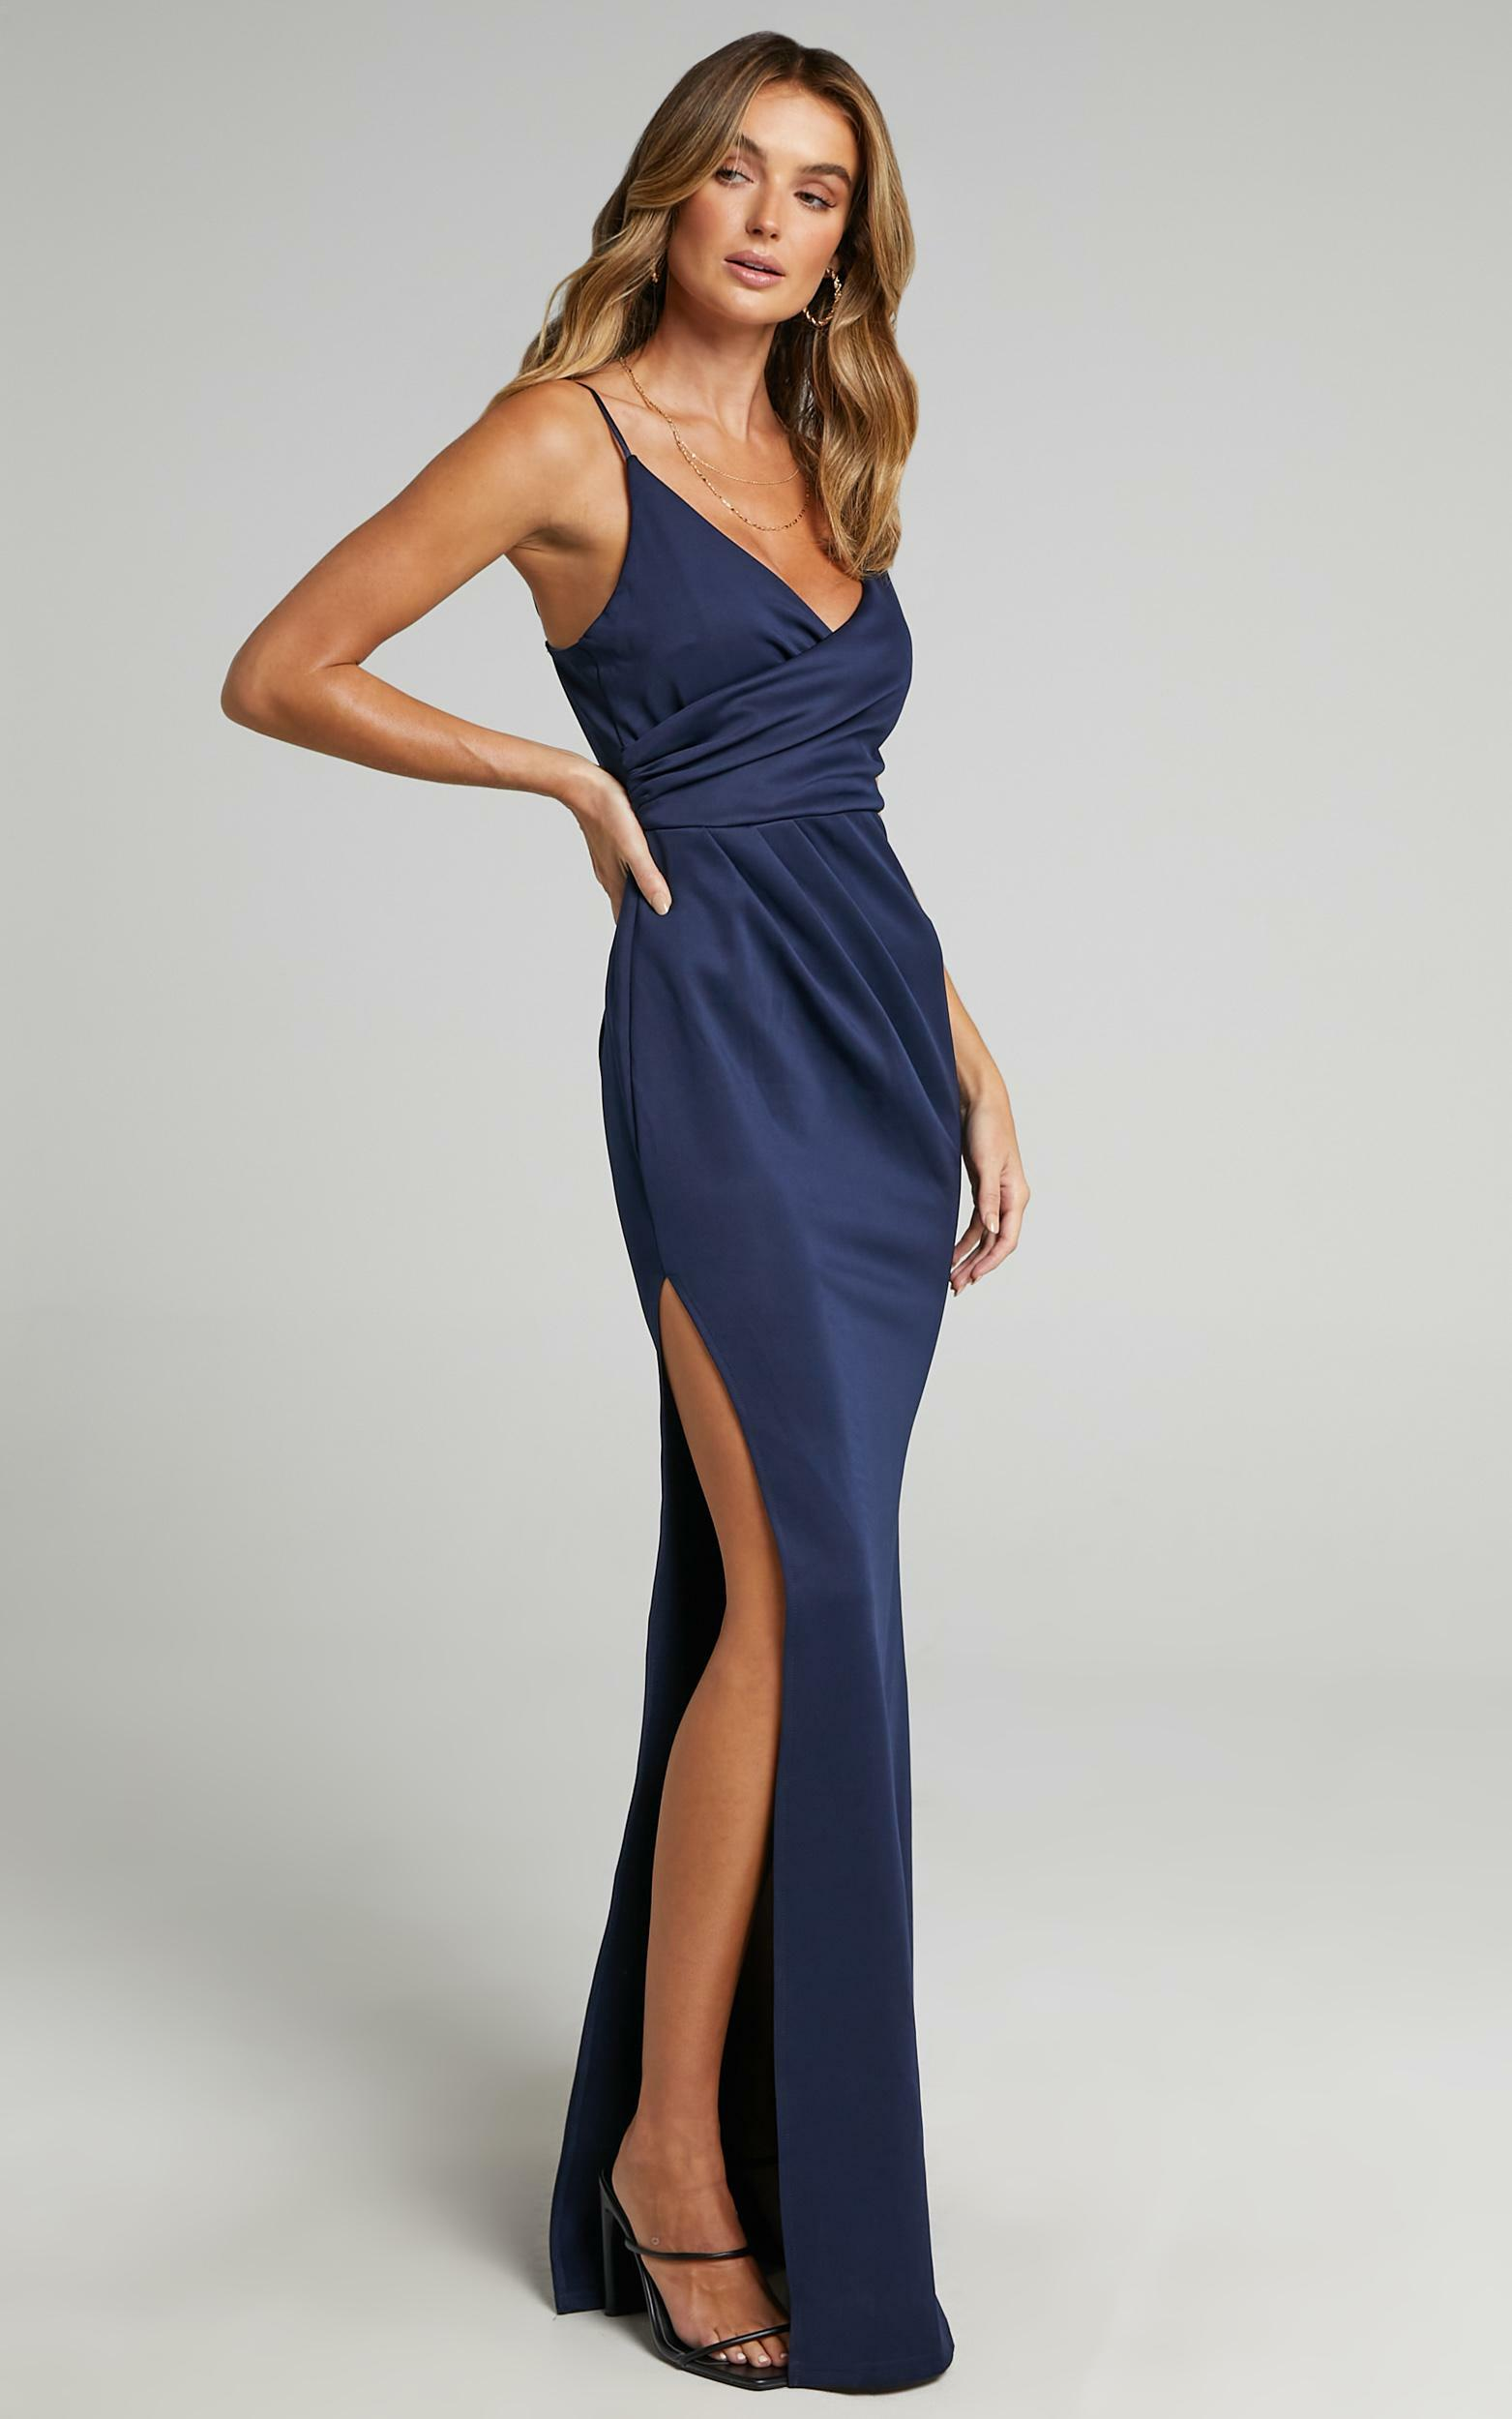 Linking Love Maxi Dress in Navy - 04, NVY2, hi-res image number null